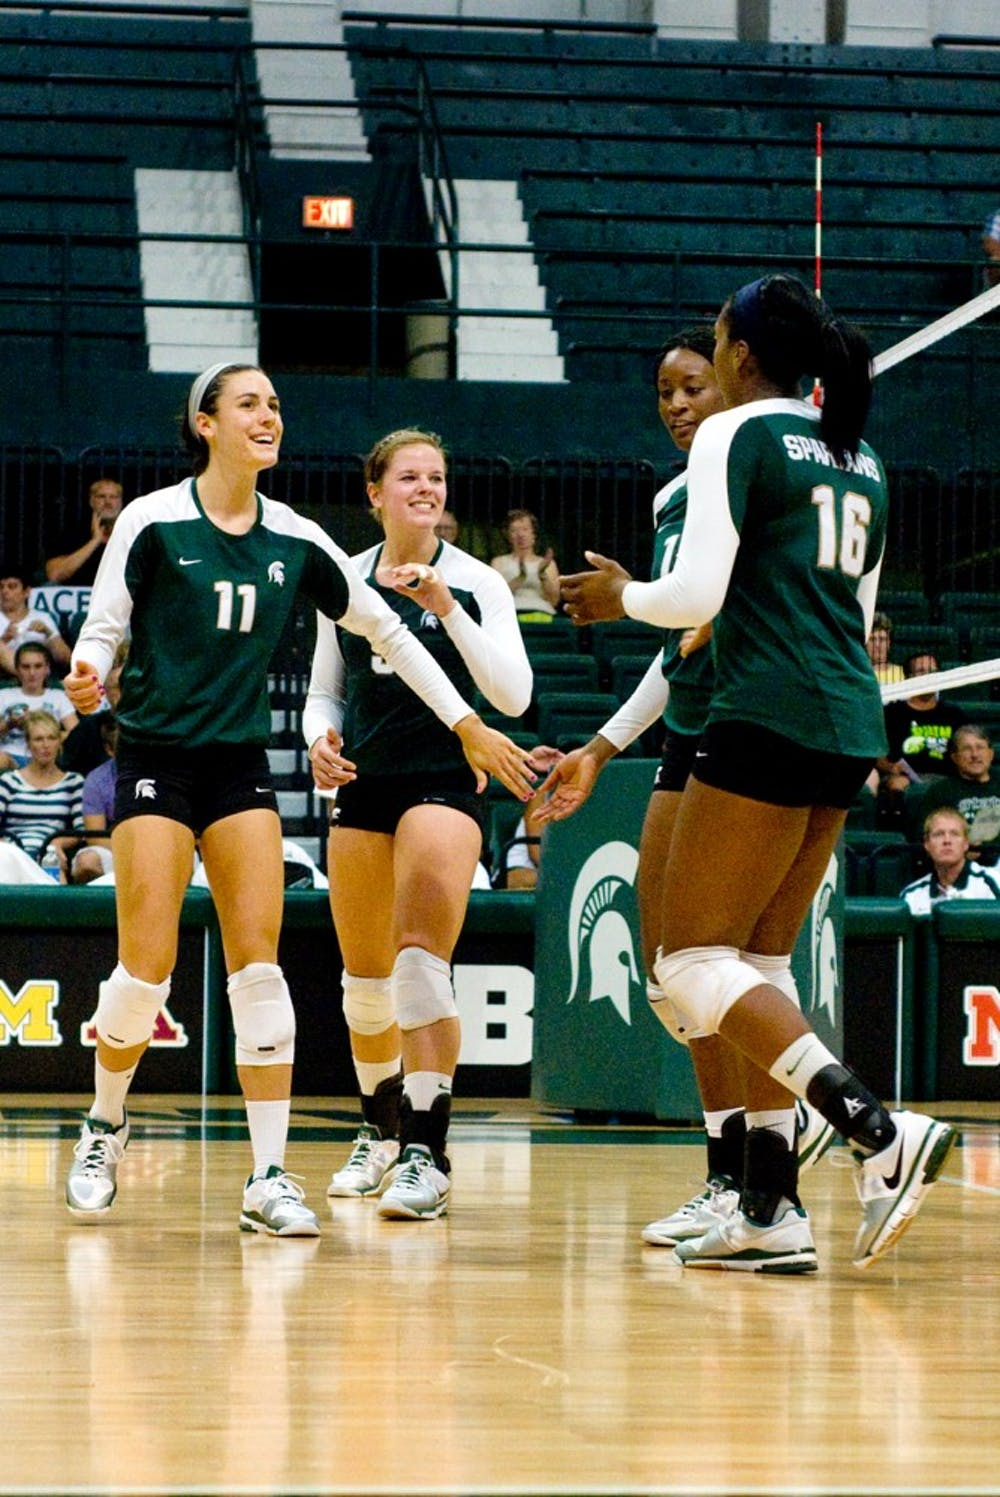 <p>From left to right, senior outside hitter Becca Zlabis, senior outside hitter and middle blocker Jenilee Rathje, freshman middle blocker Jazmine White, and senior outside hitter Kyndra Abron celebrate after gaining control of the ball on Saturday during the Spartan Showcase. The ladies beat the Cleveland State Vikings 3-0.</p>